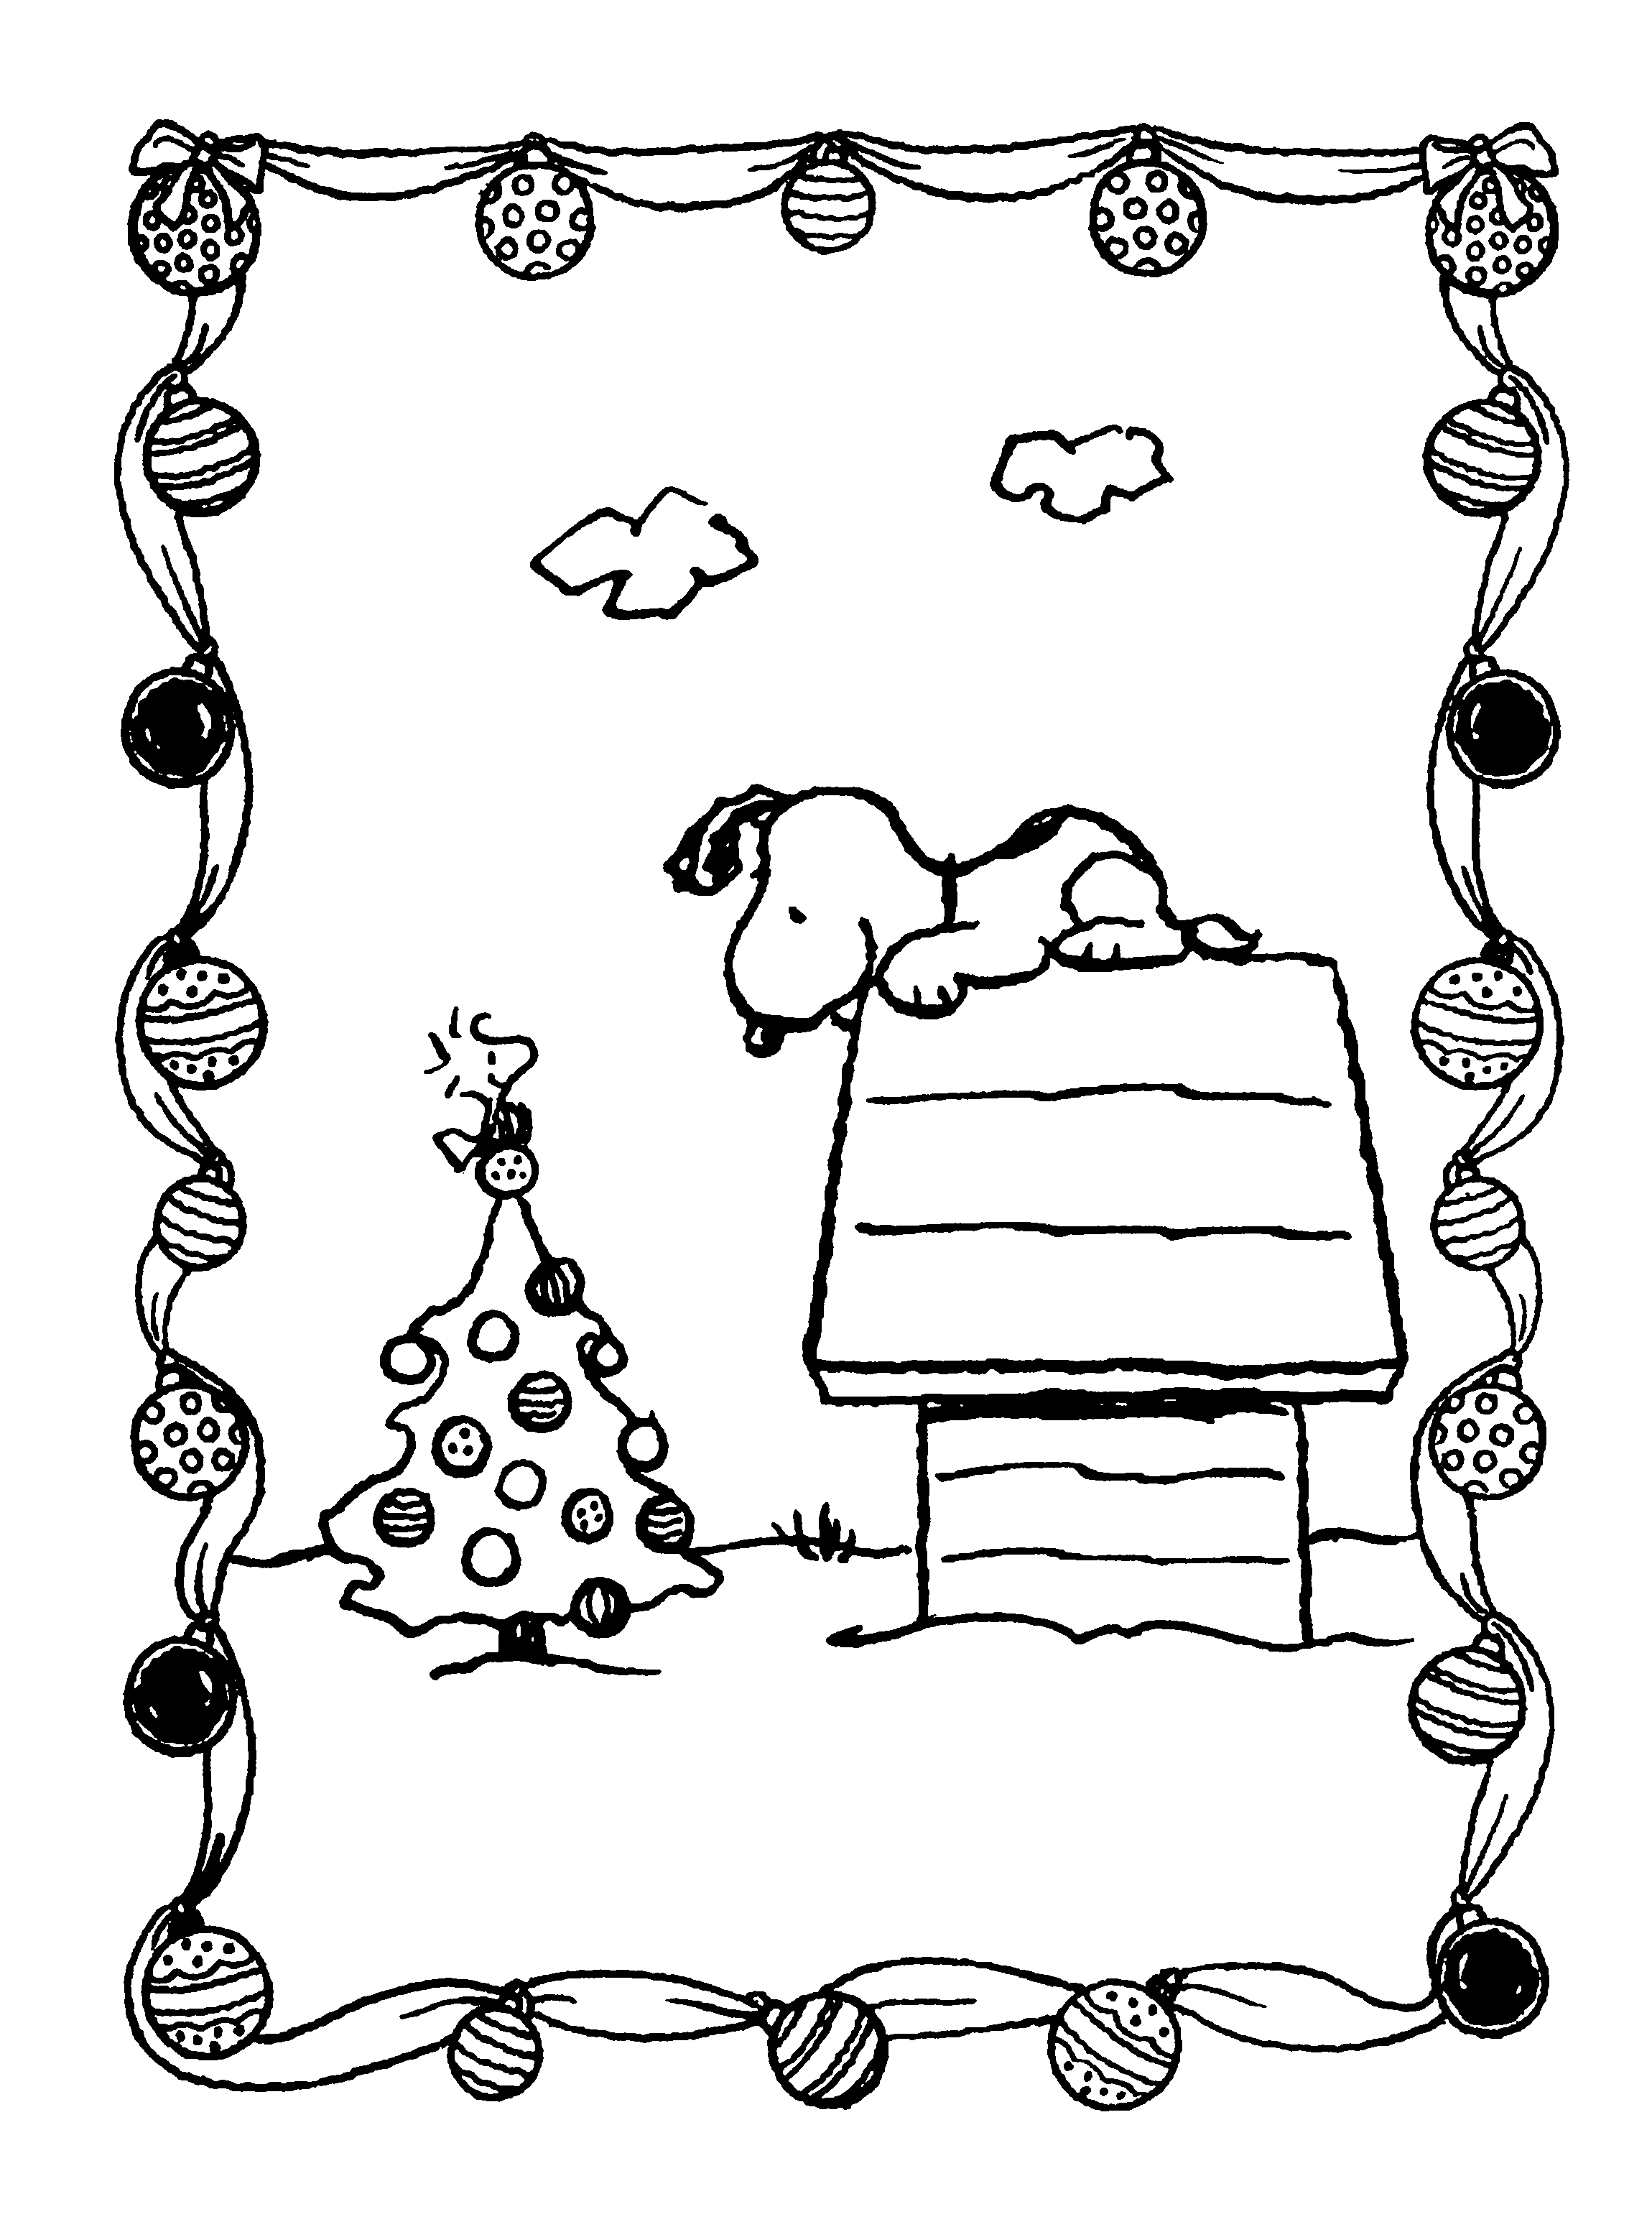 Christmas Coloring Pages Peanuts With Xmas And Activity Book Charles M Schulz